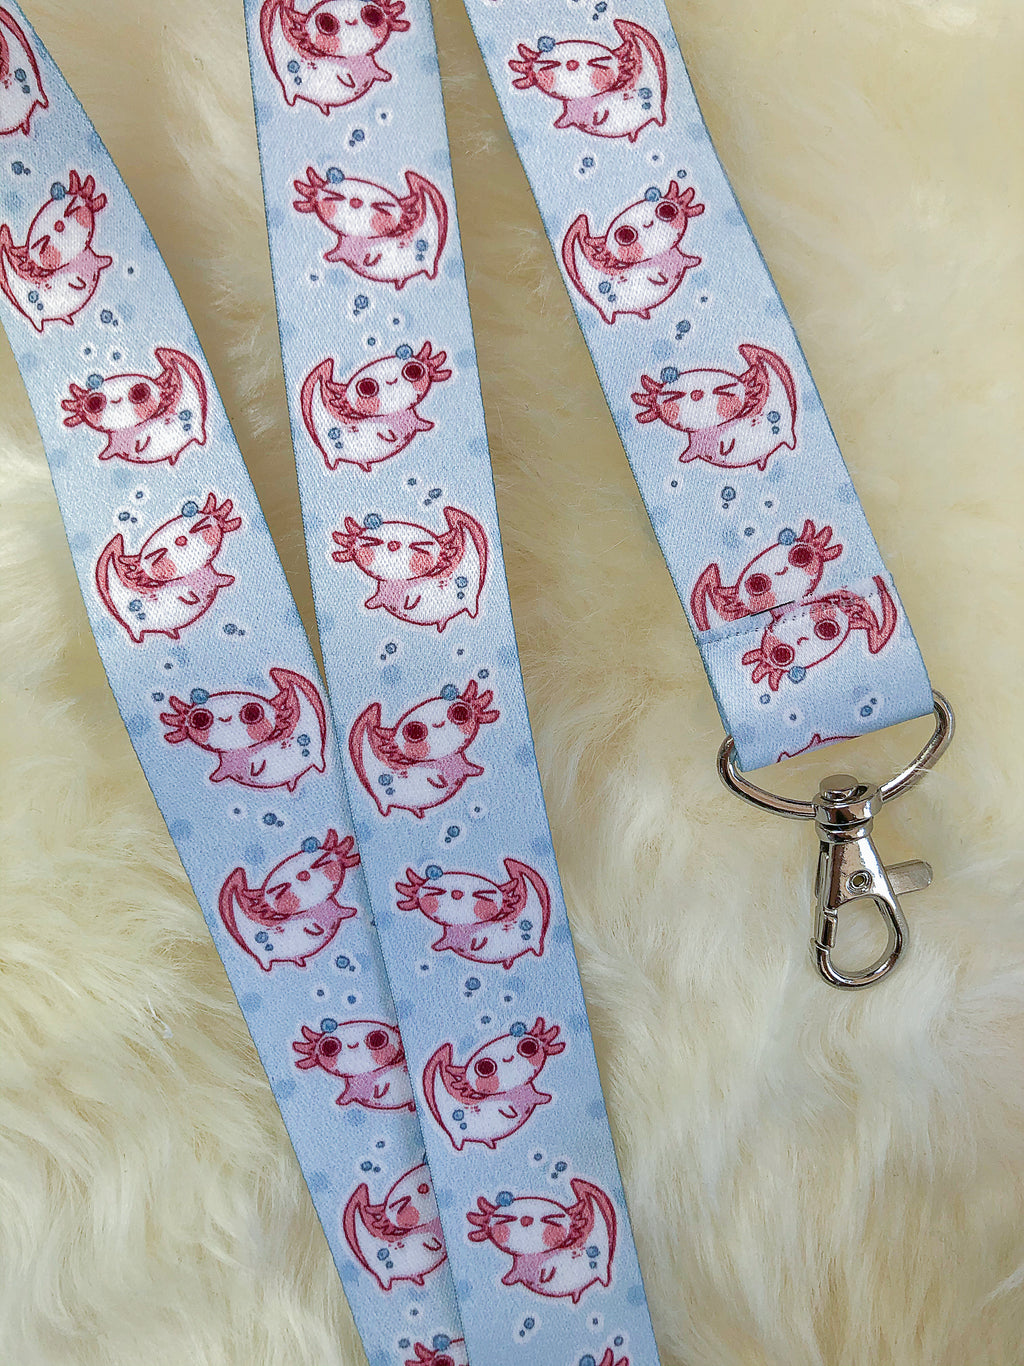 So many Axolotl | Lanyards - Aurigae Art &Illustration